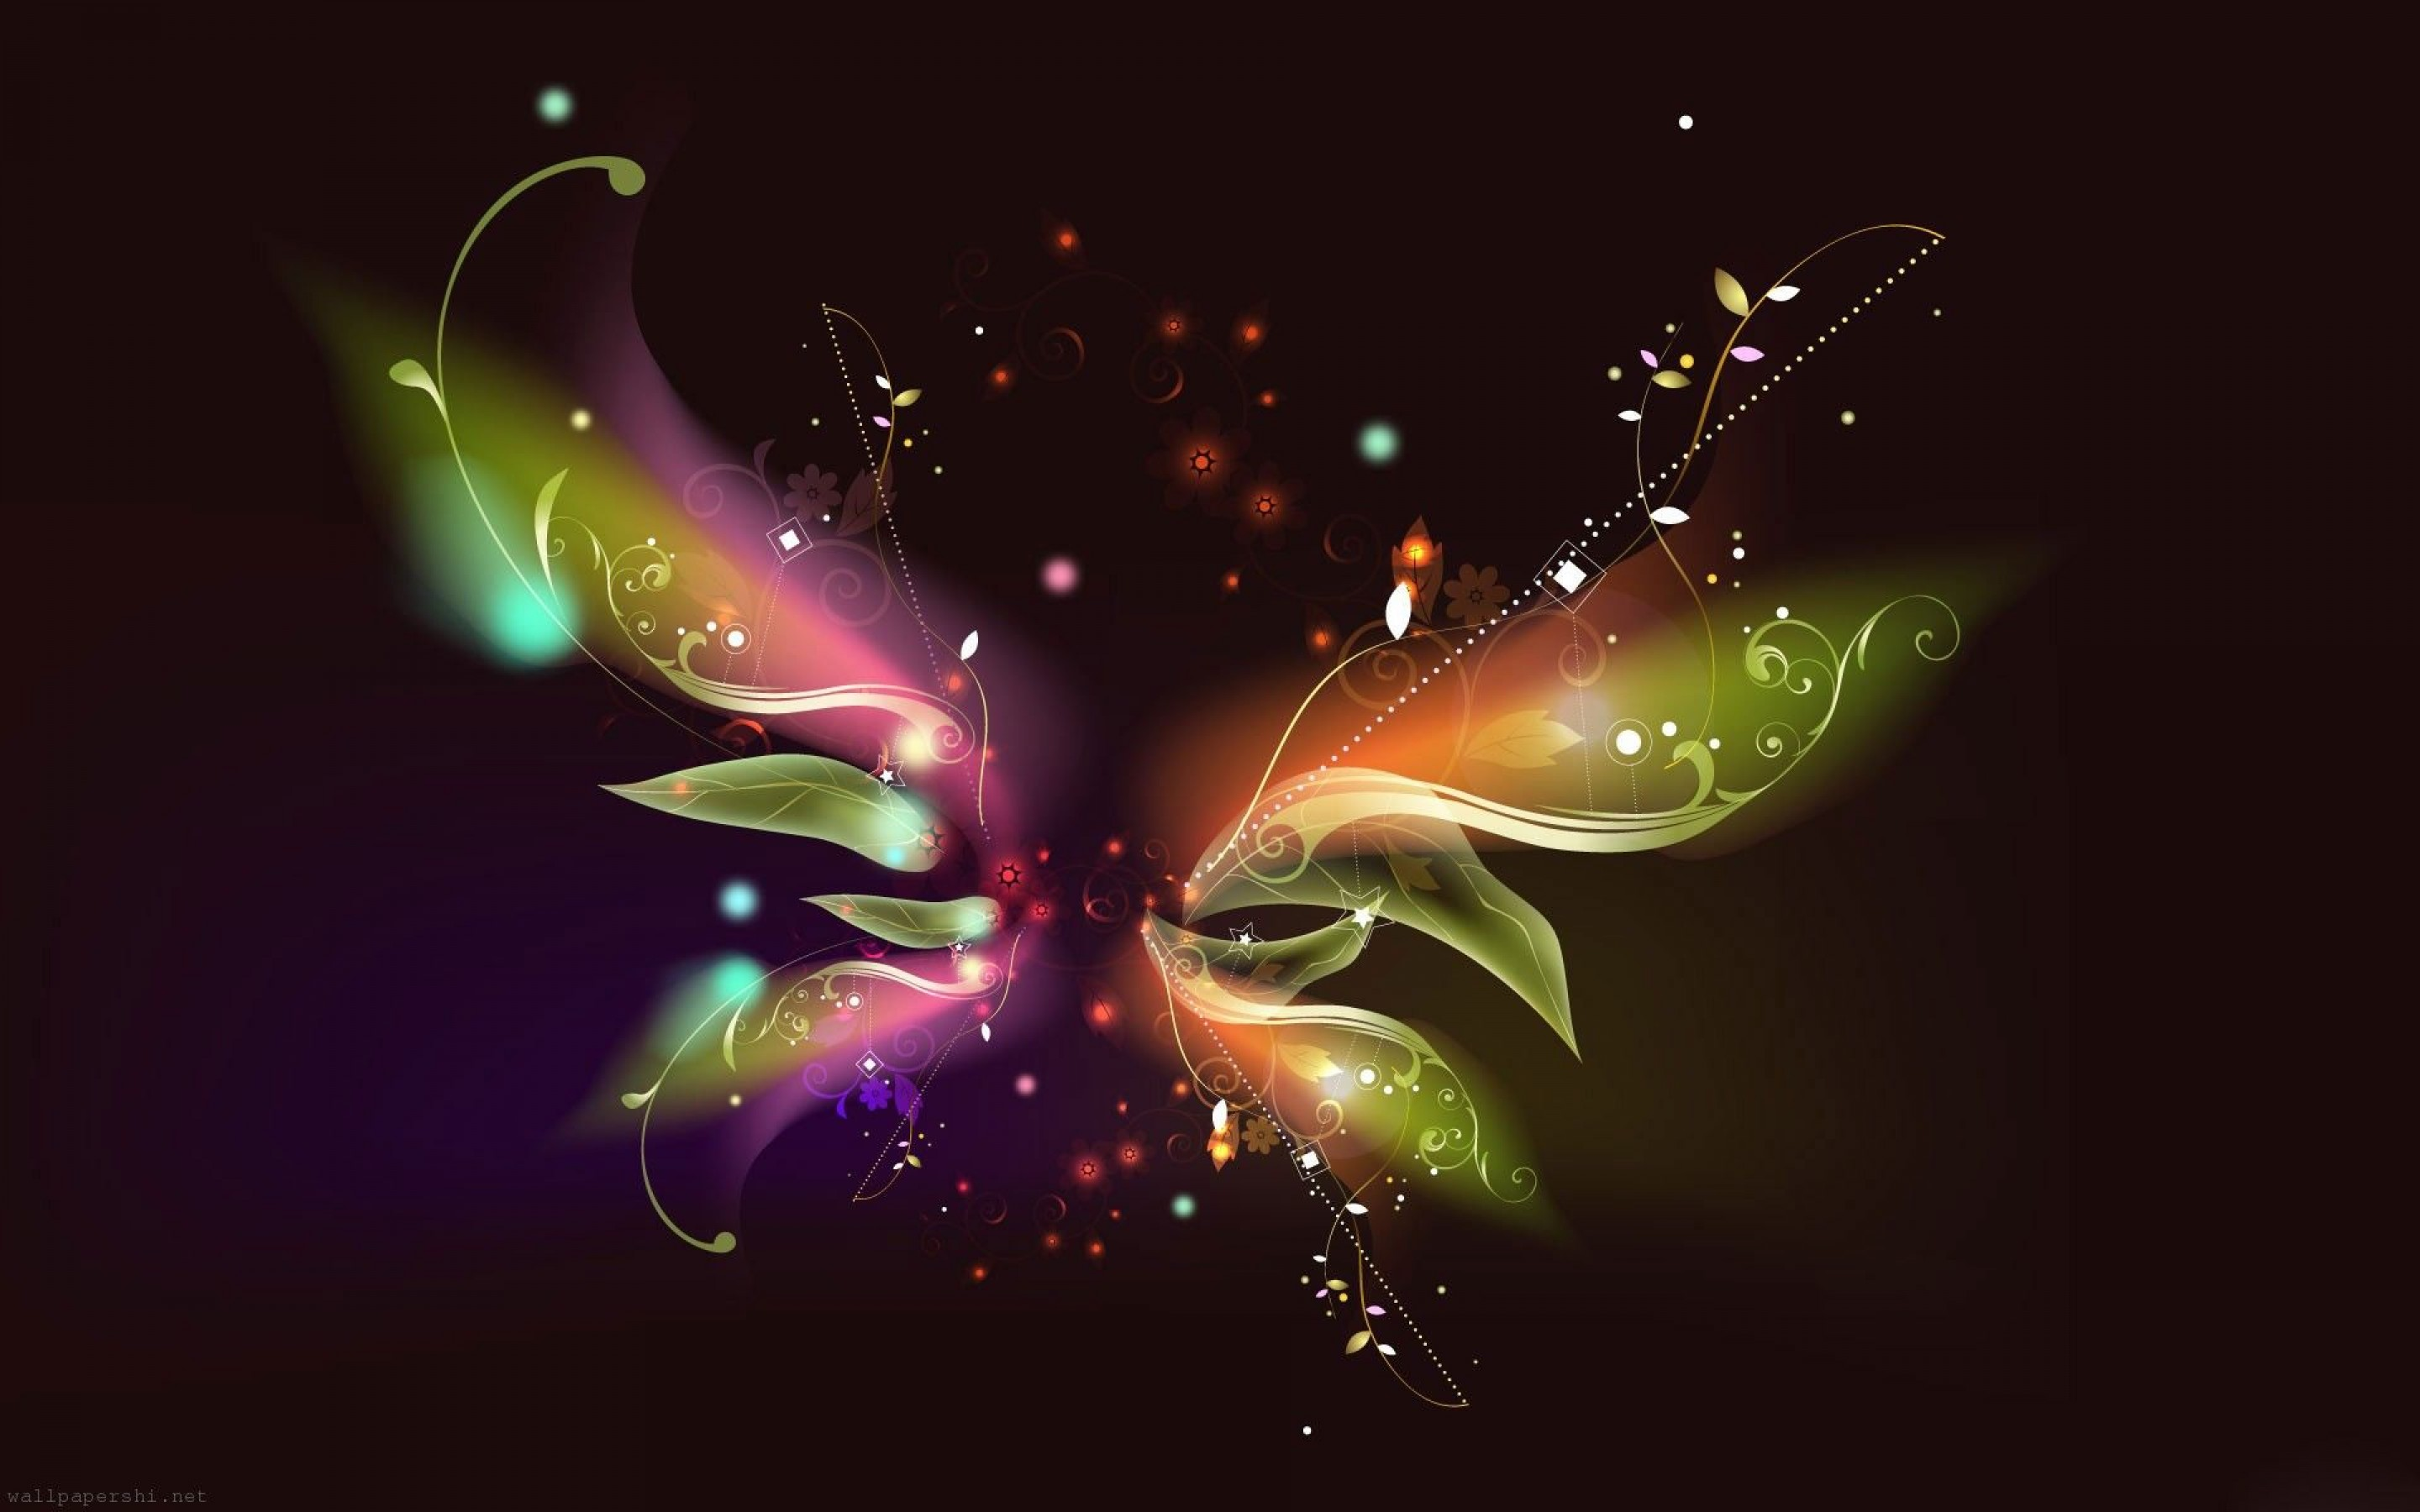 Amazing Quotes Wallpapers For Facebook 23 Best Colorful And Free Butterfly Wallpapers